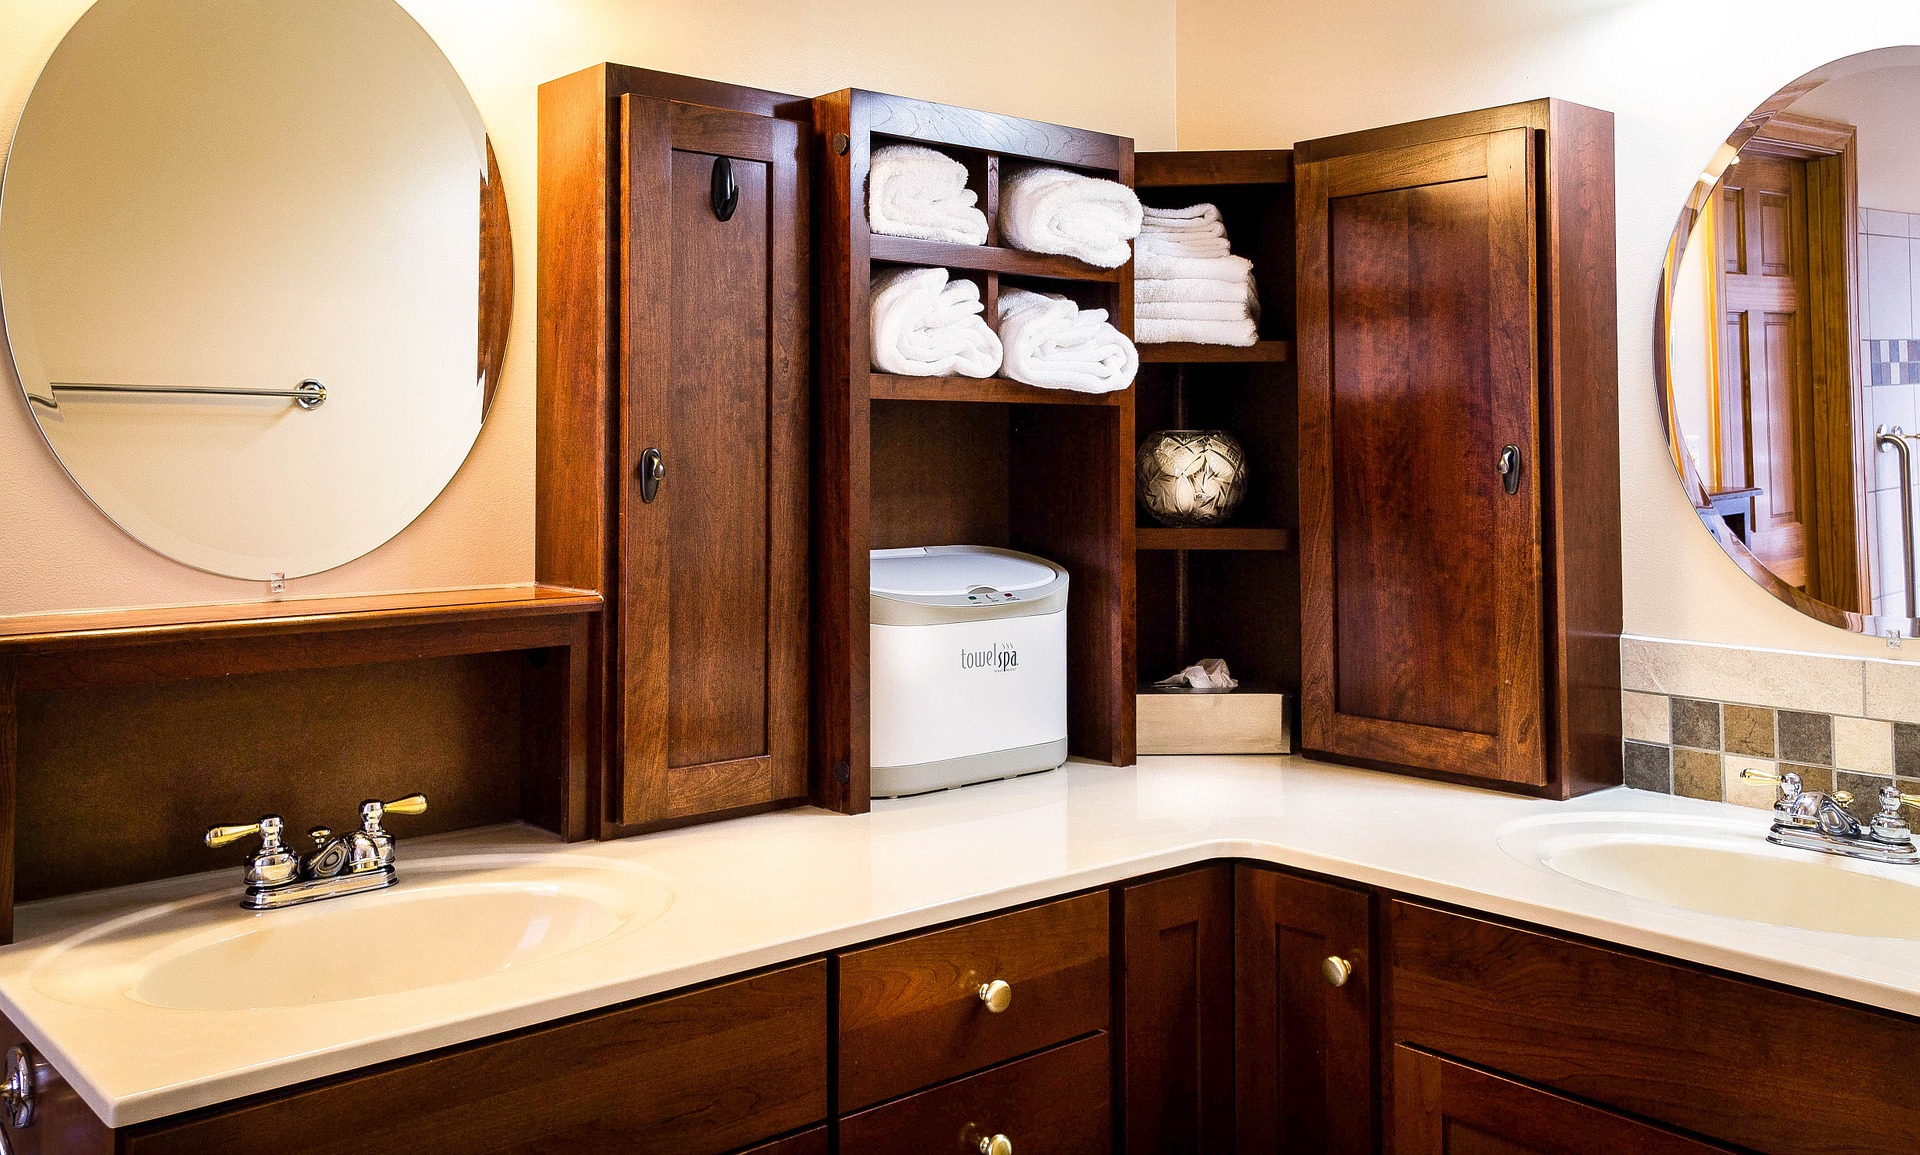 Make sure your new bathroom has plenty of room for storage. Medicine cabinets and storage shelves are handy for the items you use daily.